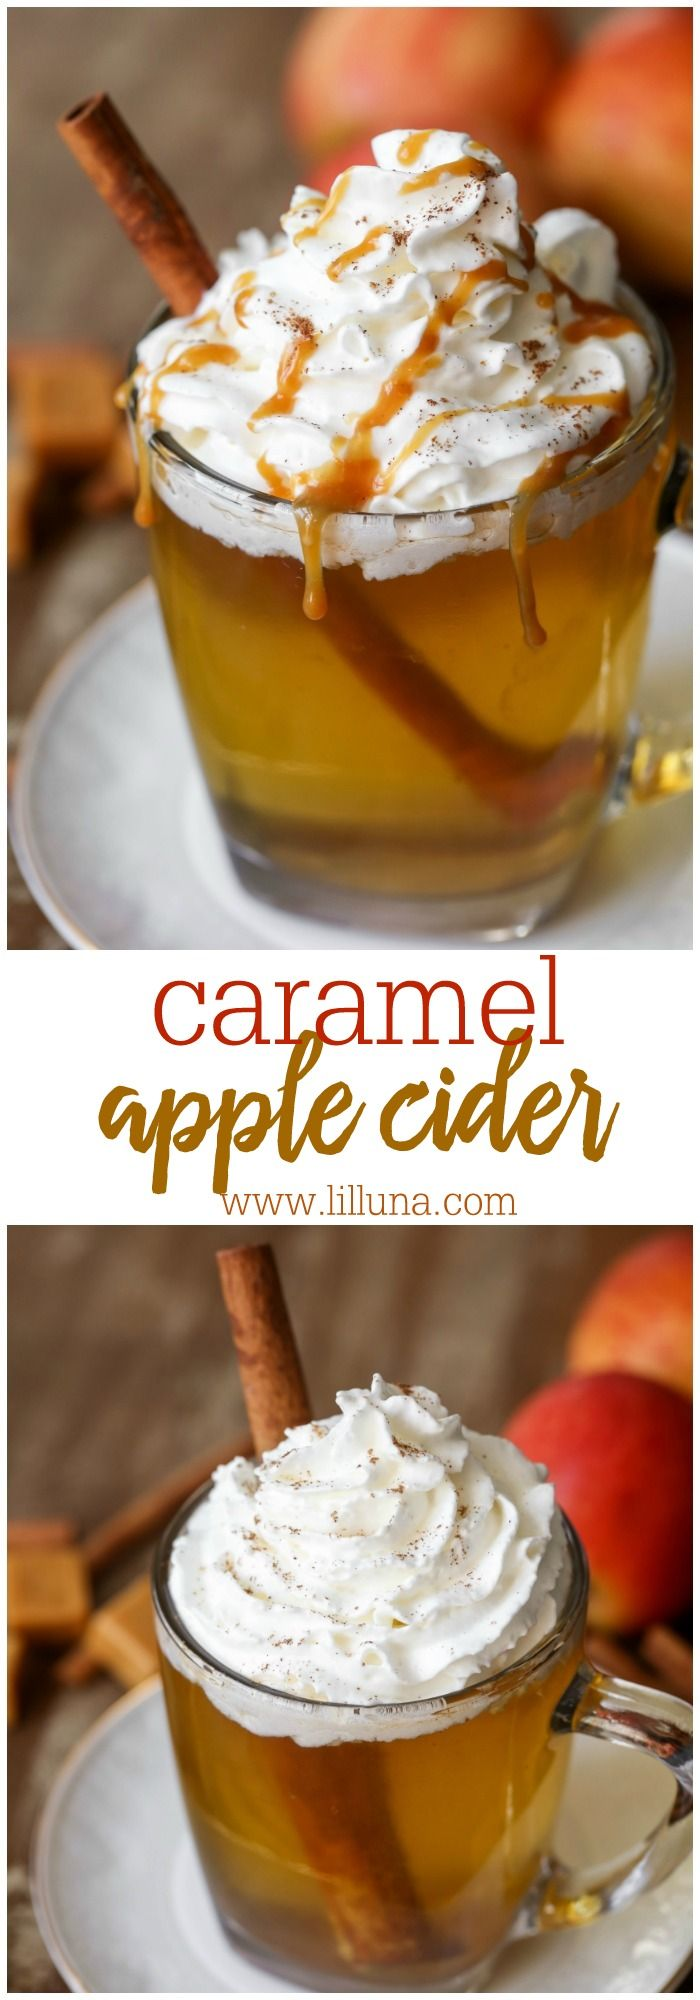 DELICIOUS Caramel Apple Cider - one of the easiest and yummiest drinks to enjoy during fall and Halloween!